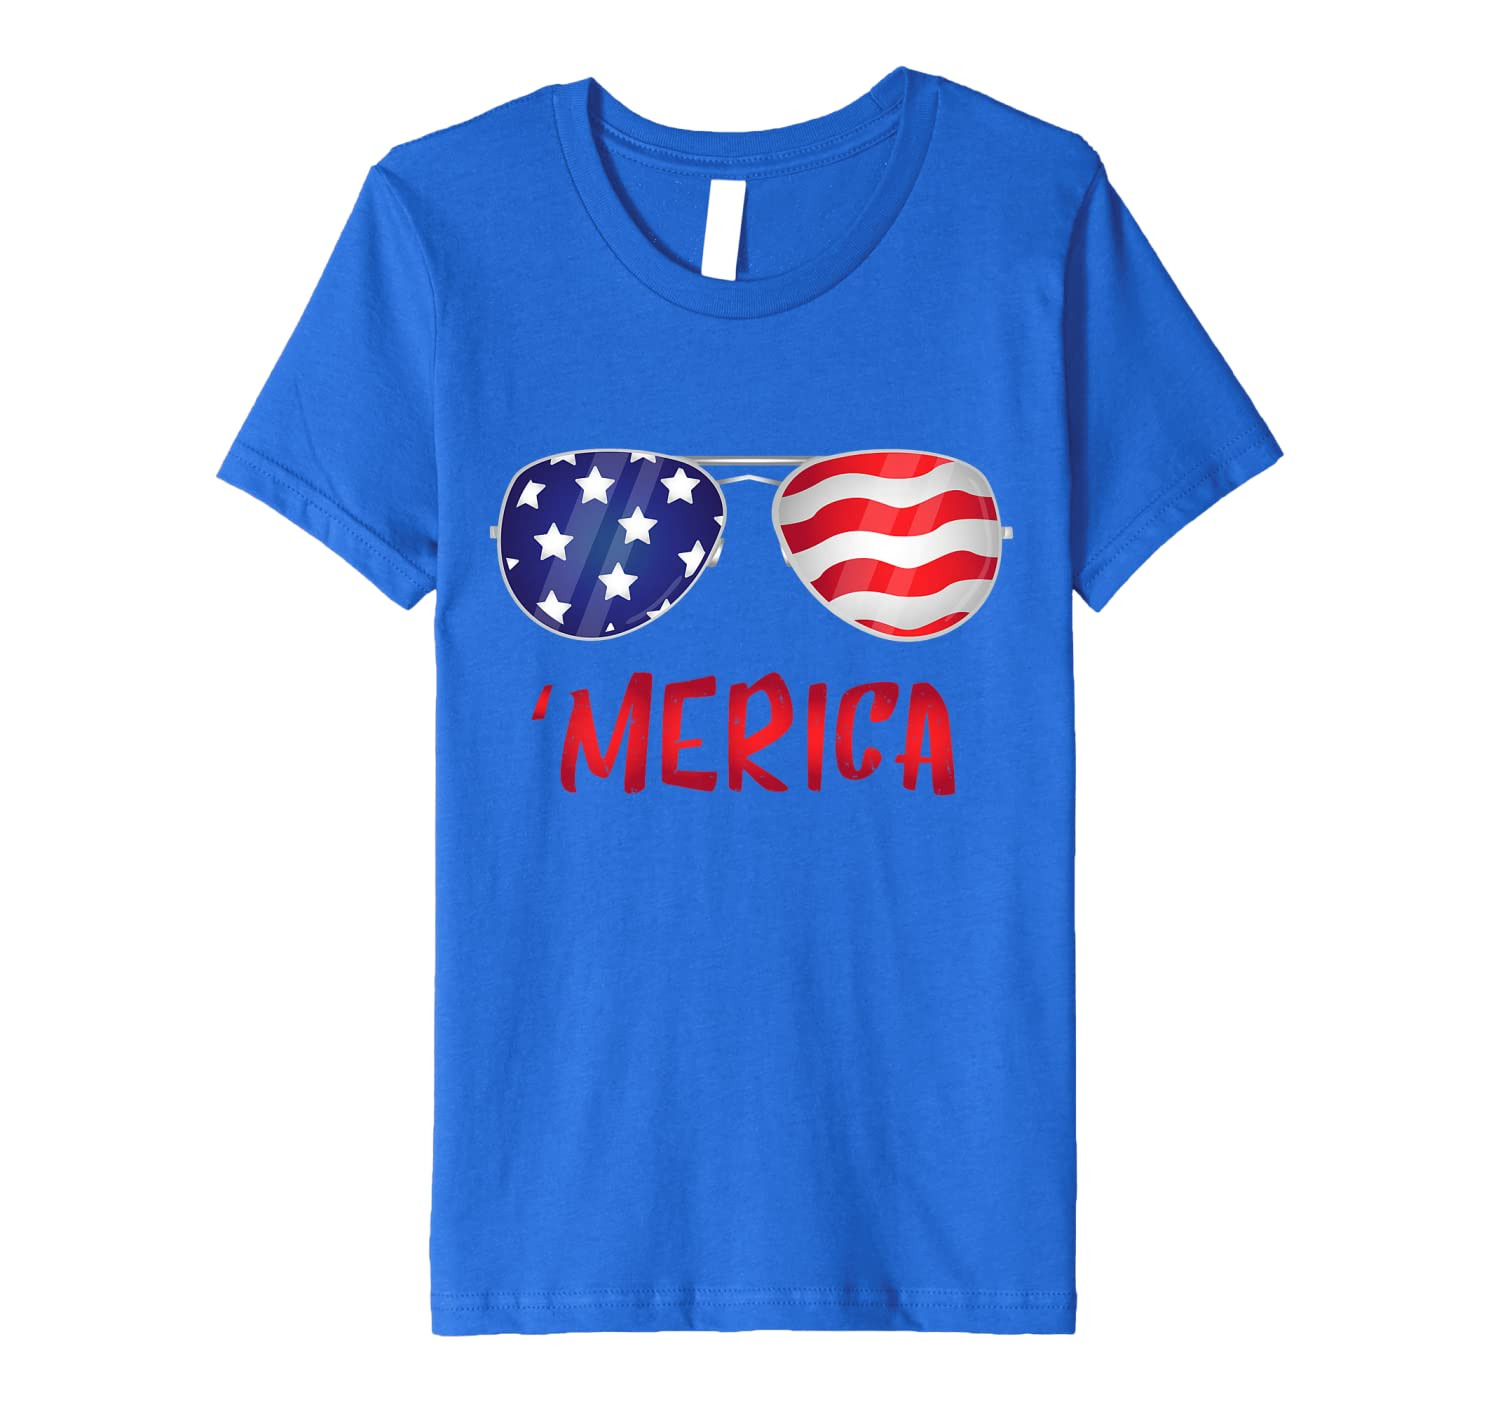 Merica USA Flag 4th of July Sunglasses Outfit Women Men Gift Premium T-Shirt Unisex Tshirt